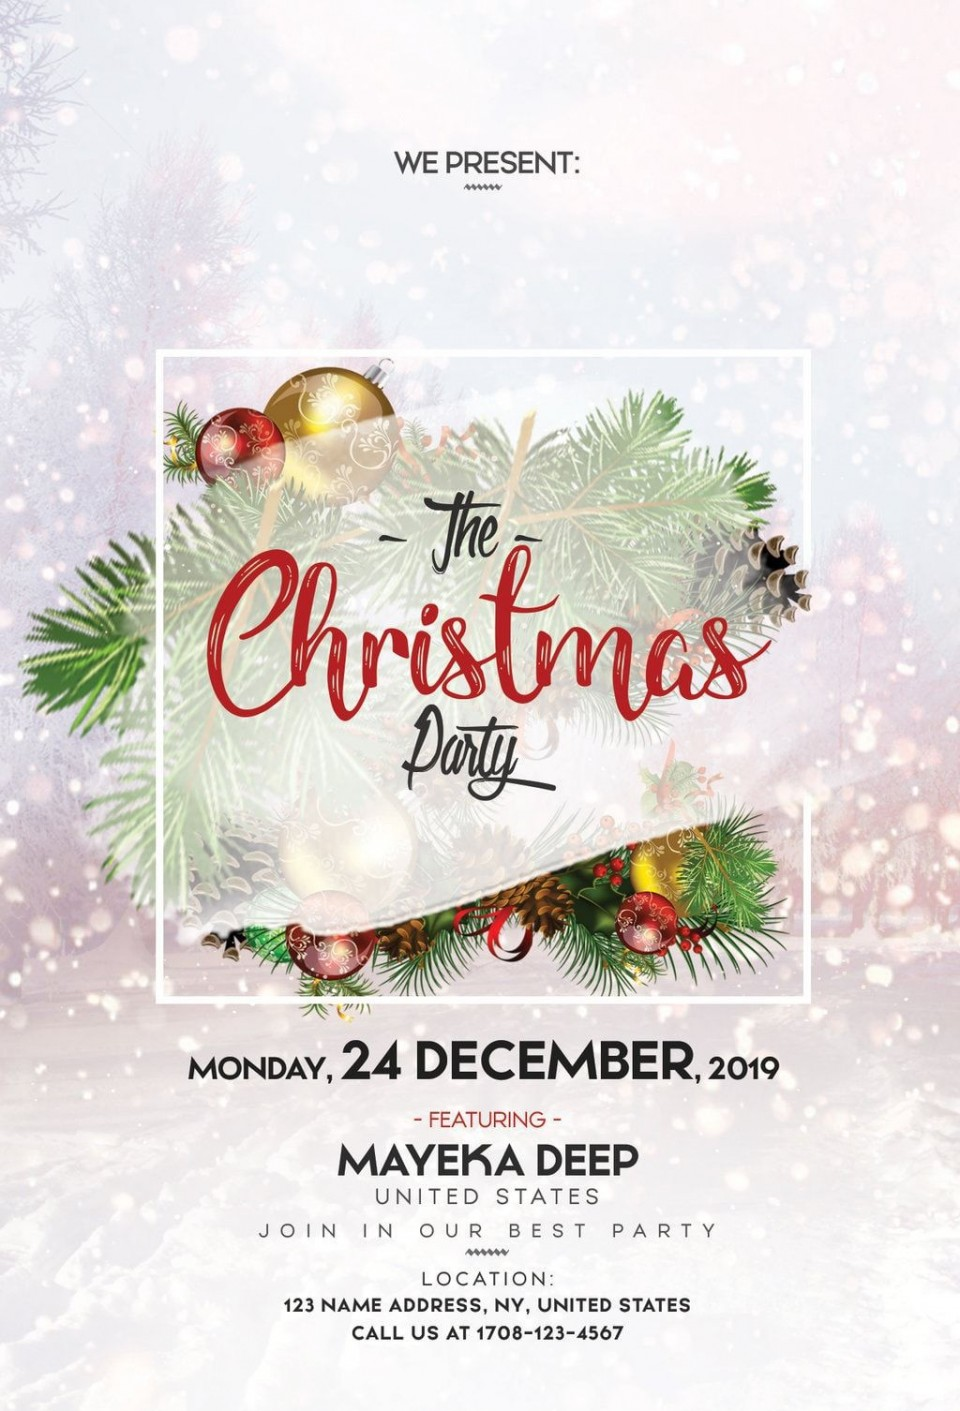 004 Staggering Free Christma Poster Template High Def  Uk Party Download Fair960